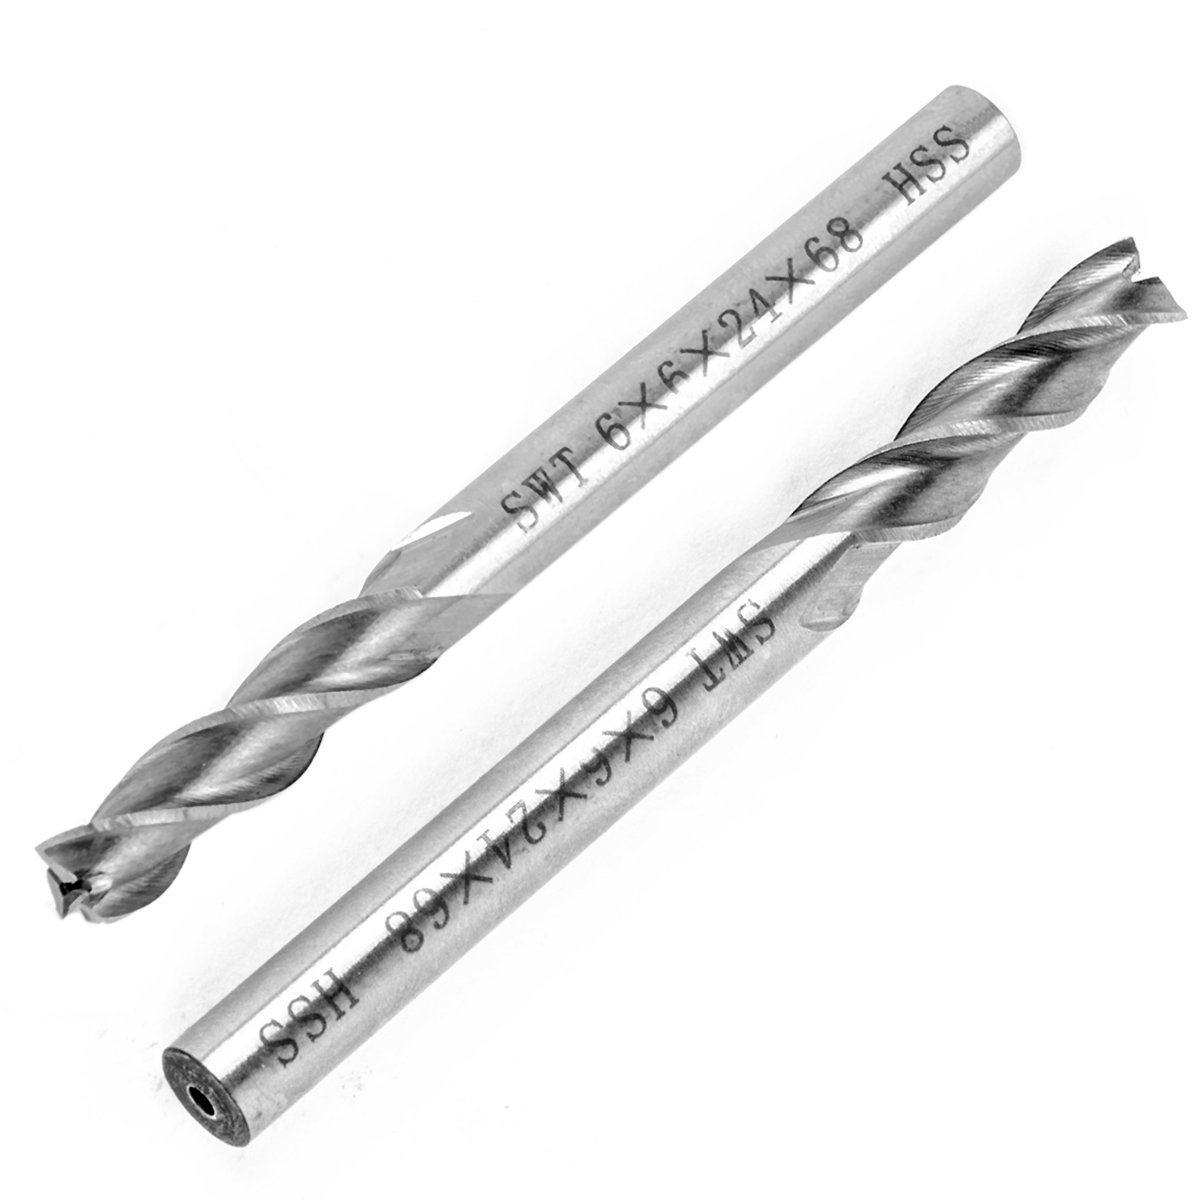 1pc 3 Flutes HSS End Mill 6mm Shank CNC Milling Cutter Mayitr For Power Tools